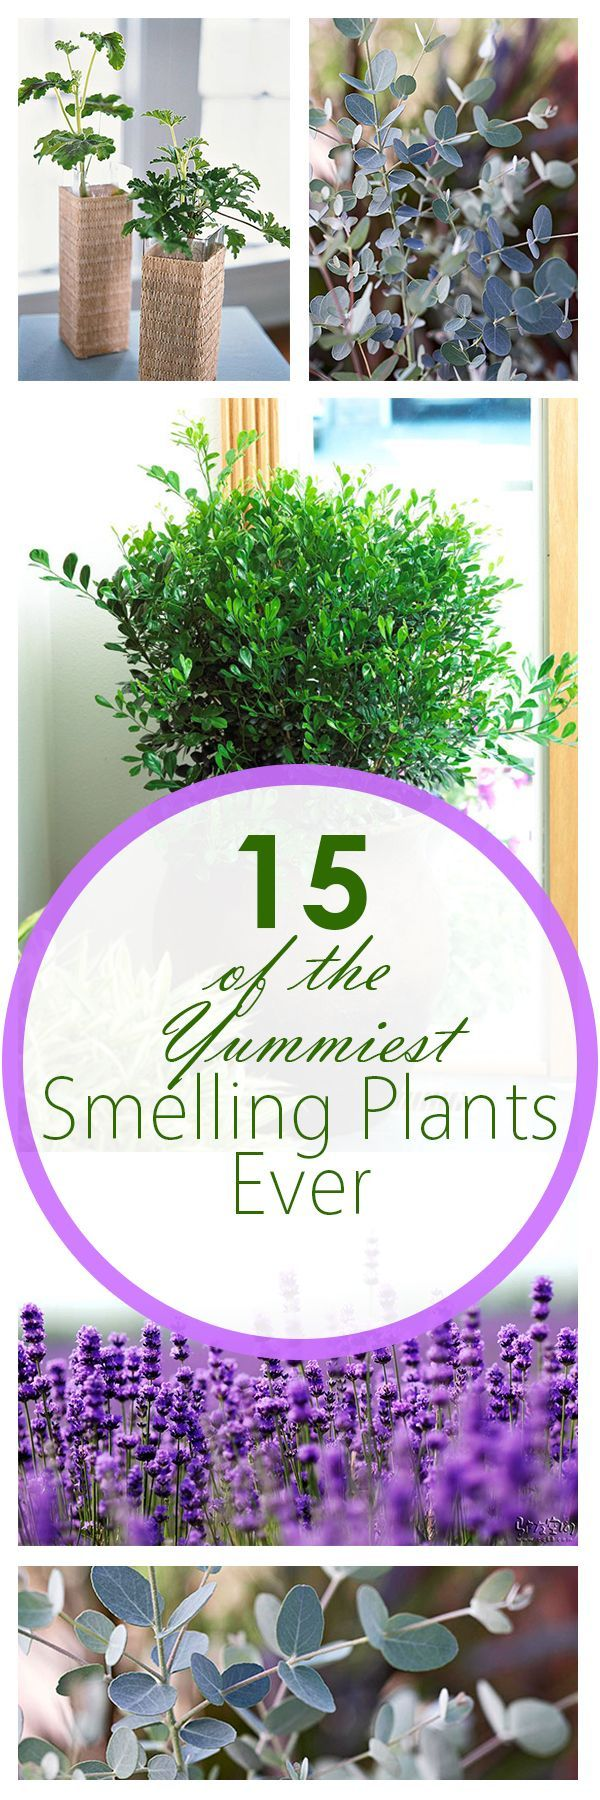 883 best images about garden paths on pinterest shade garden - 15 Of The Yummiest Smelling Plants Ever